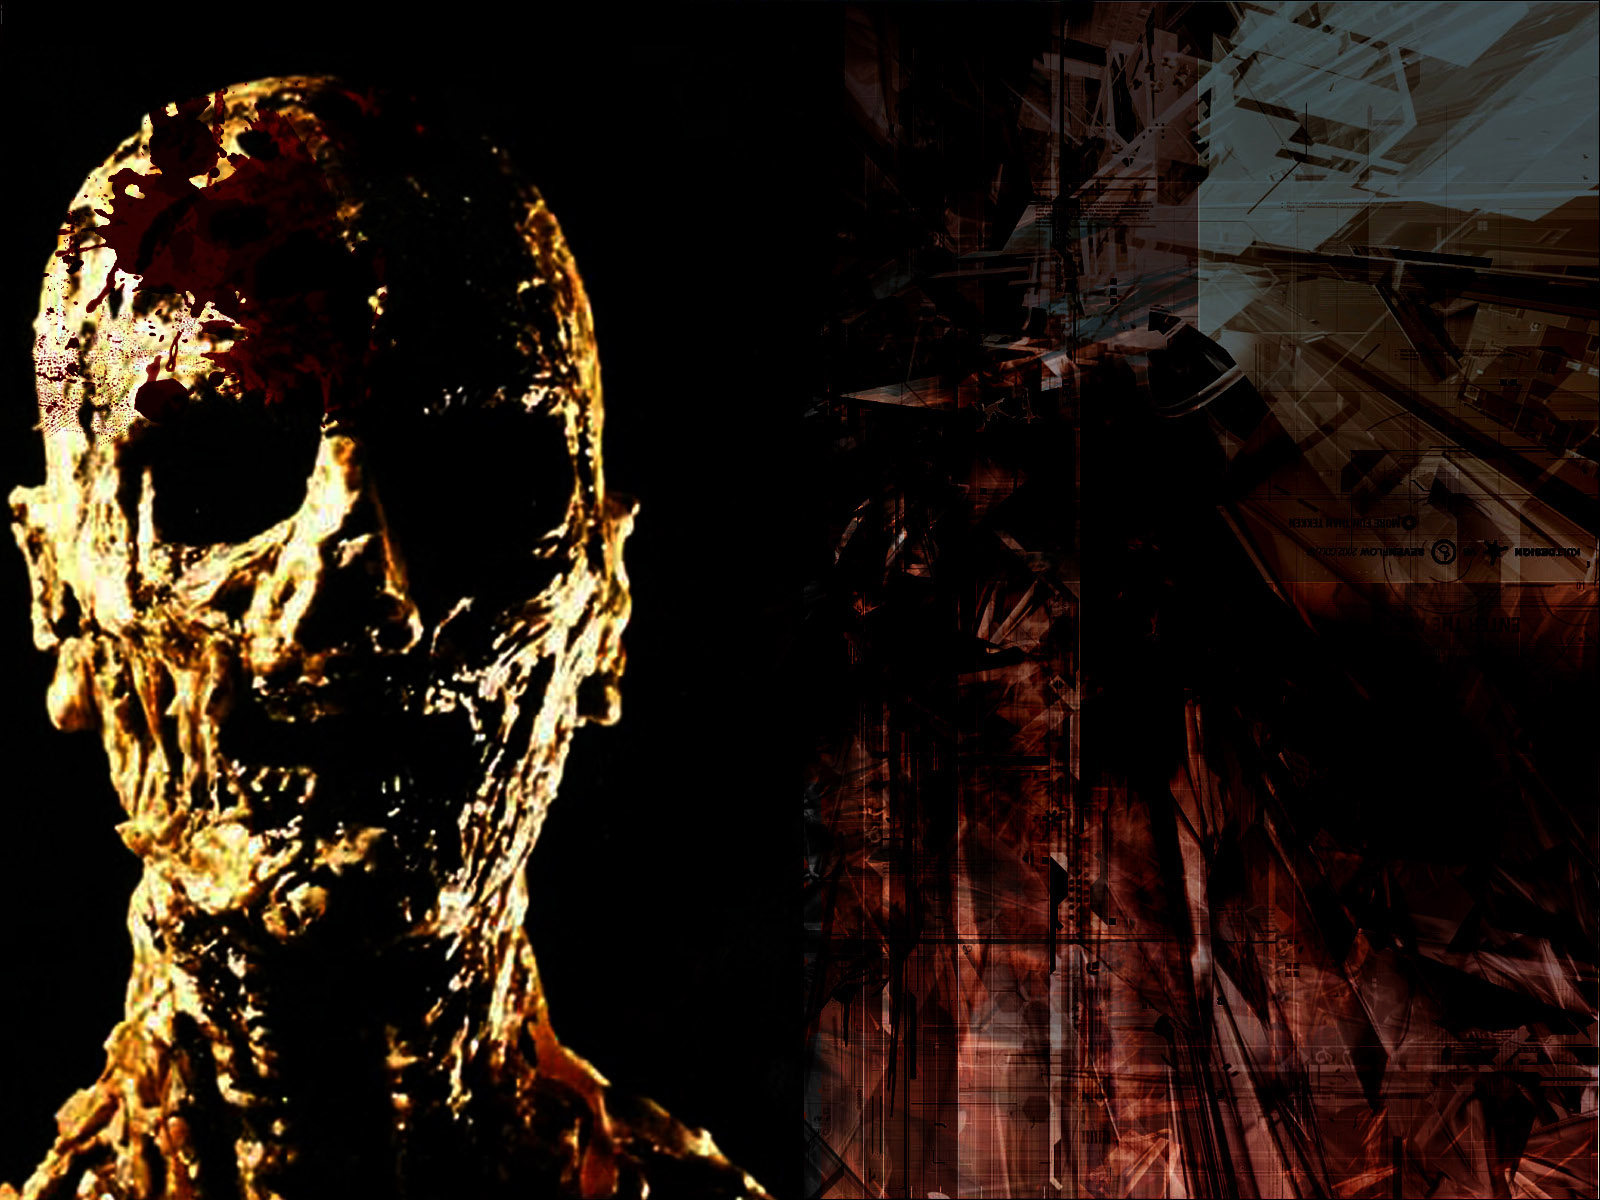 Horror wallpapers horror wallpaper Amazing Wallpapers 1600x1200